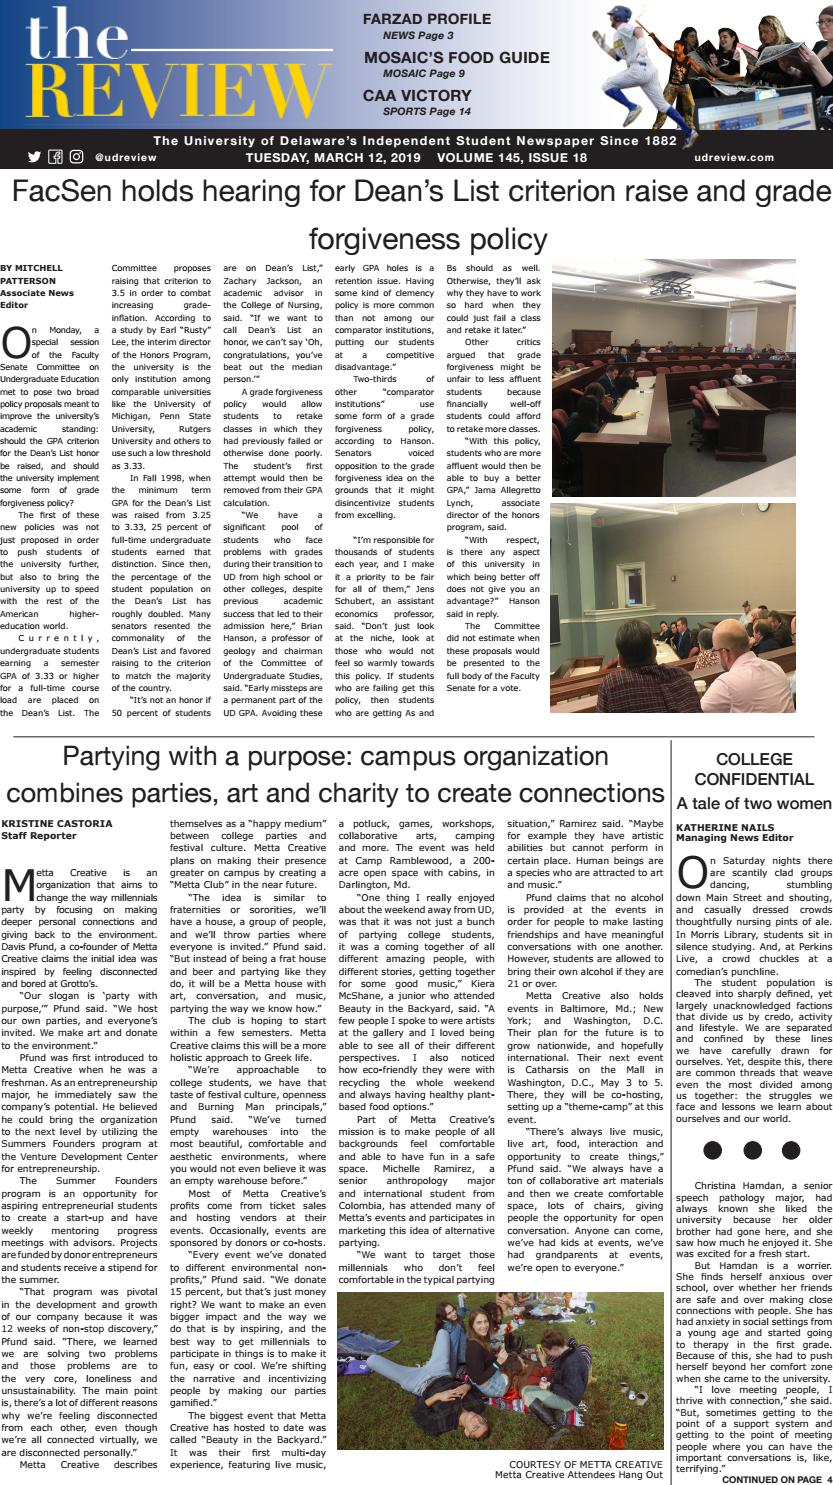 201fe102c79 March 13, 2019 - Issue 18, Volume 145 by The Review - issuu